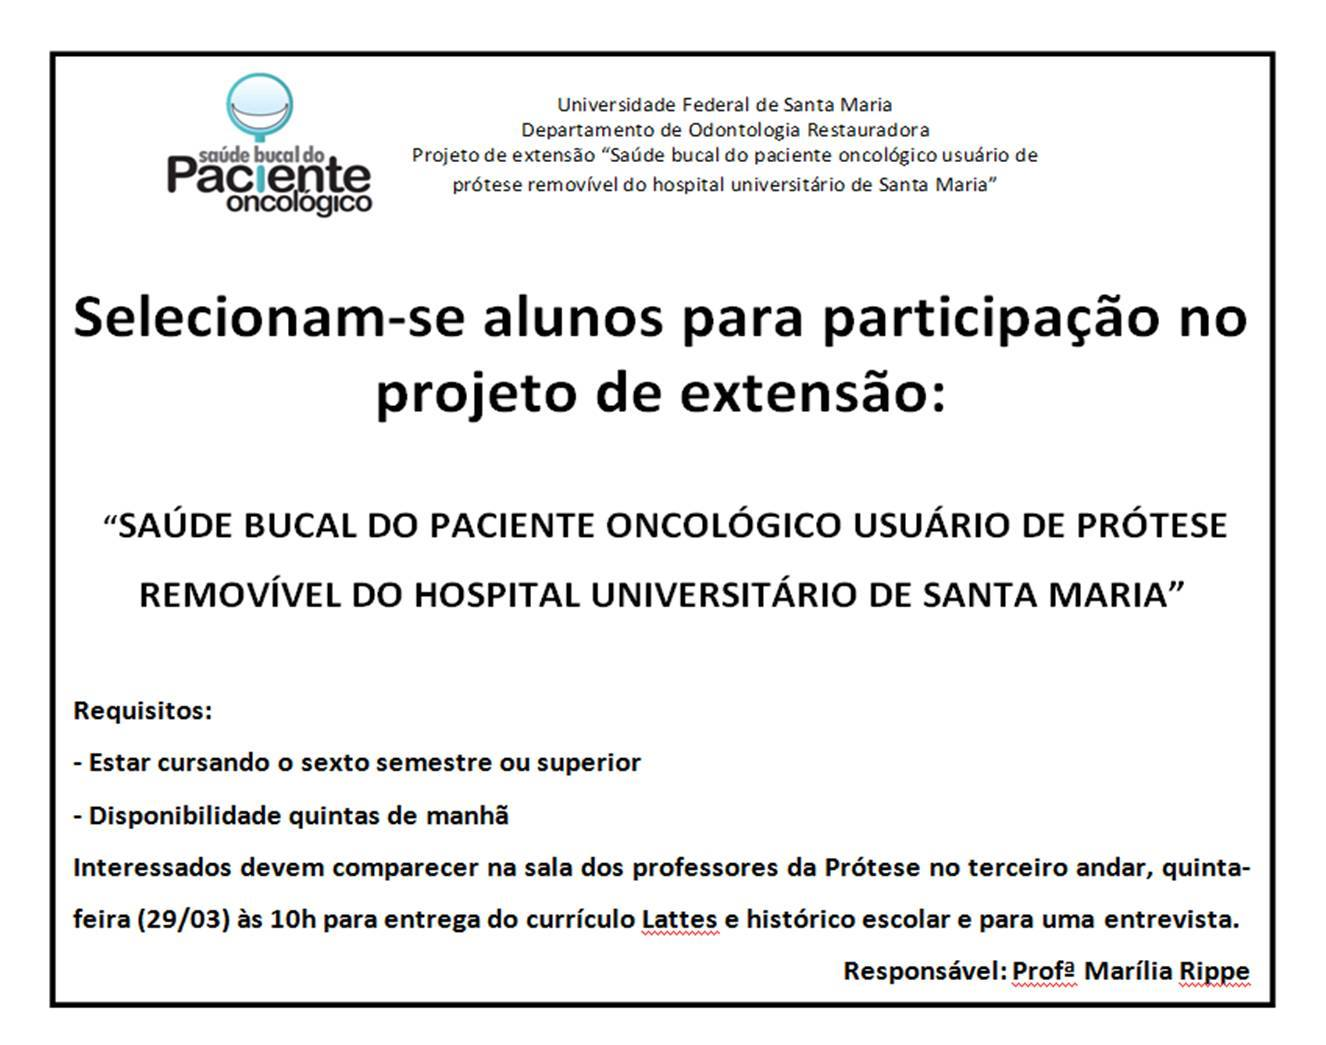 saude bucal do paciente oncologico